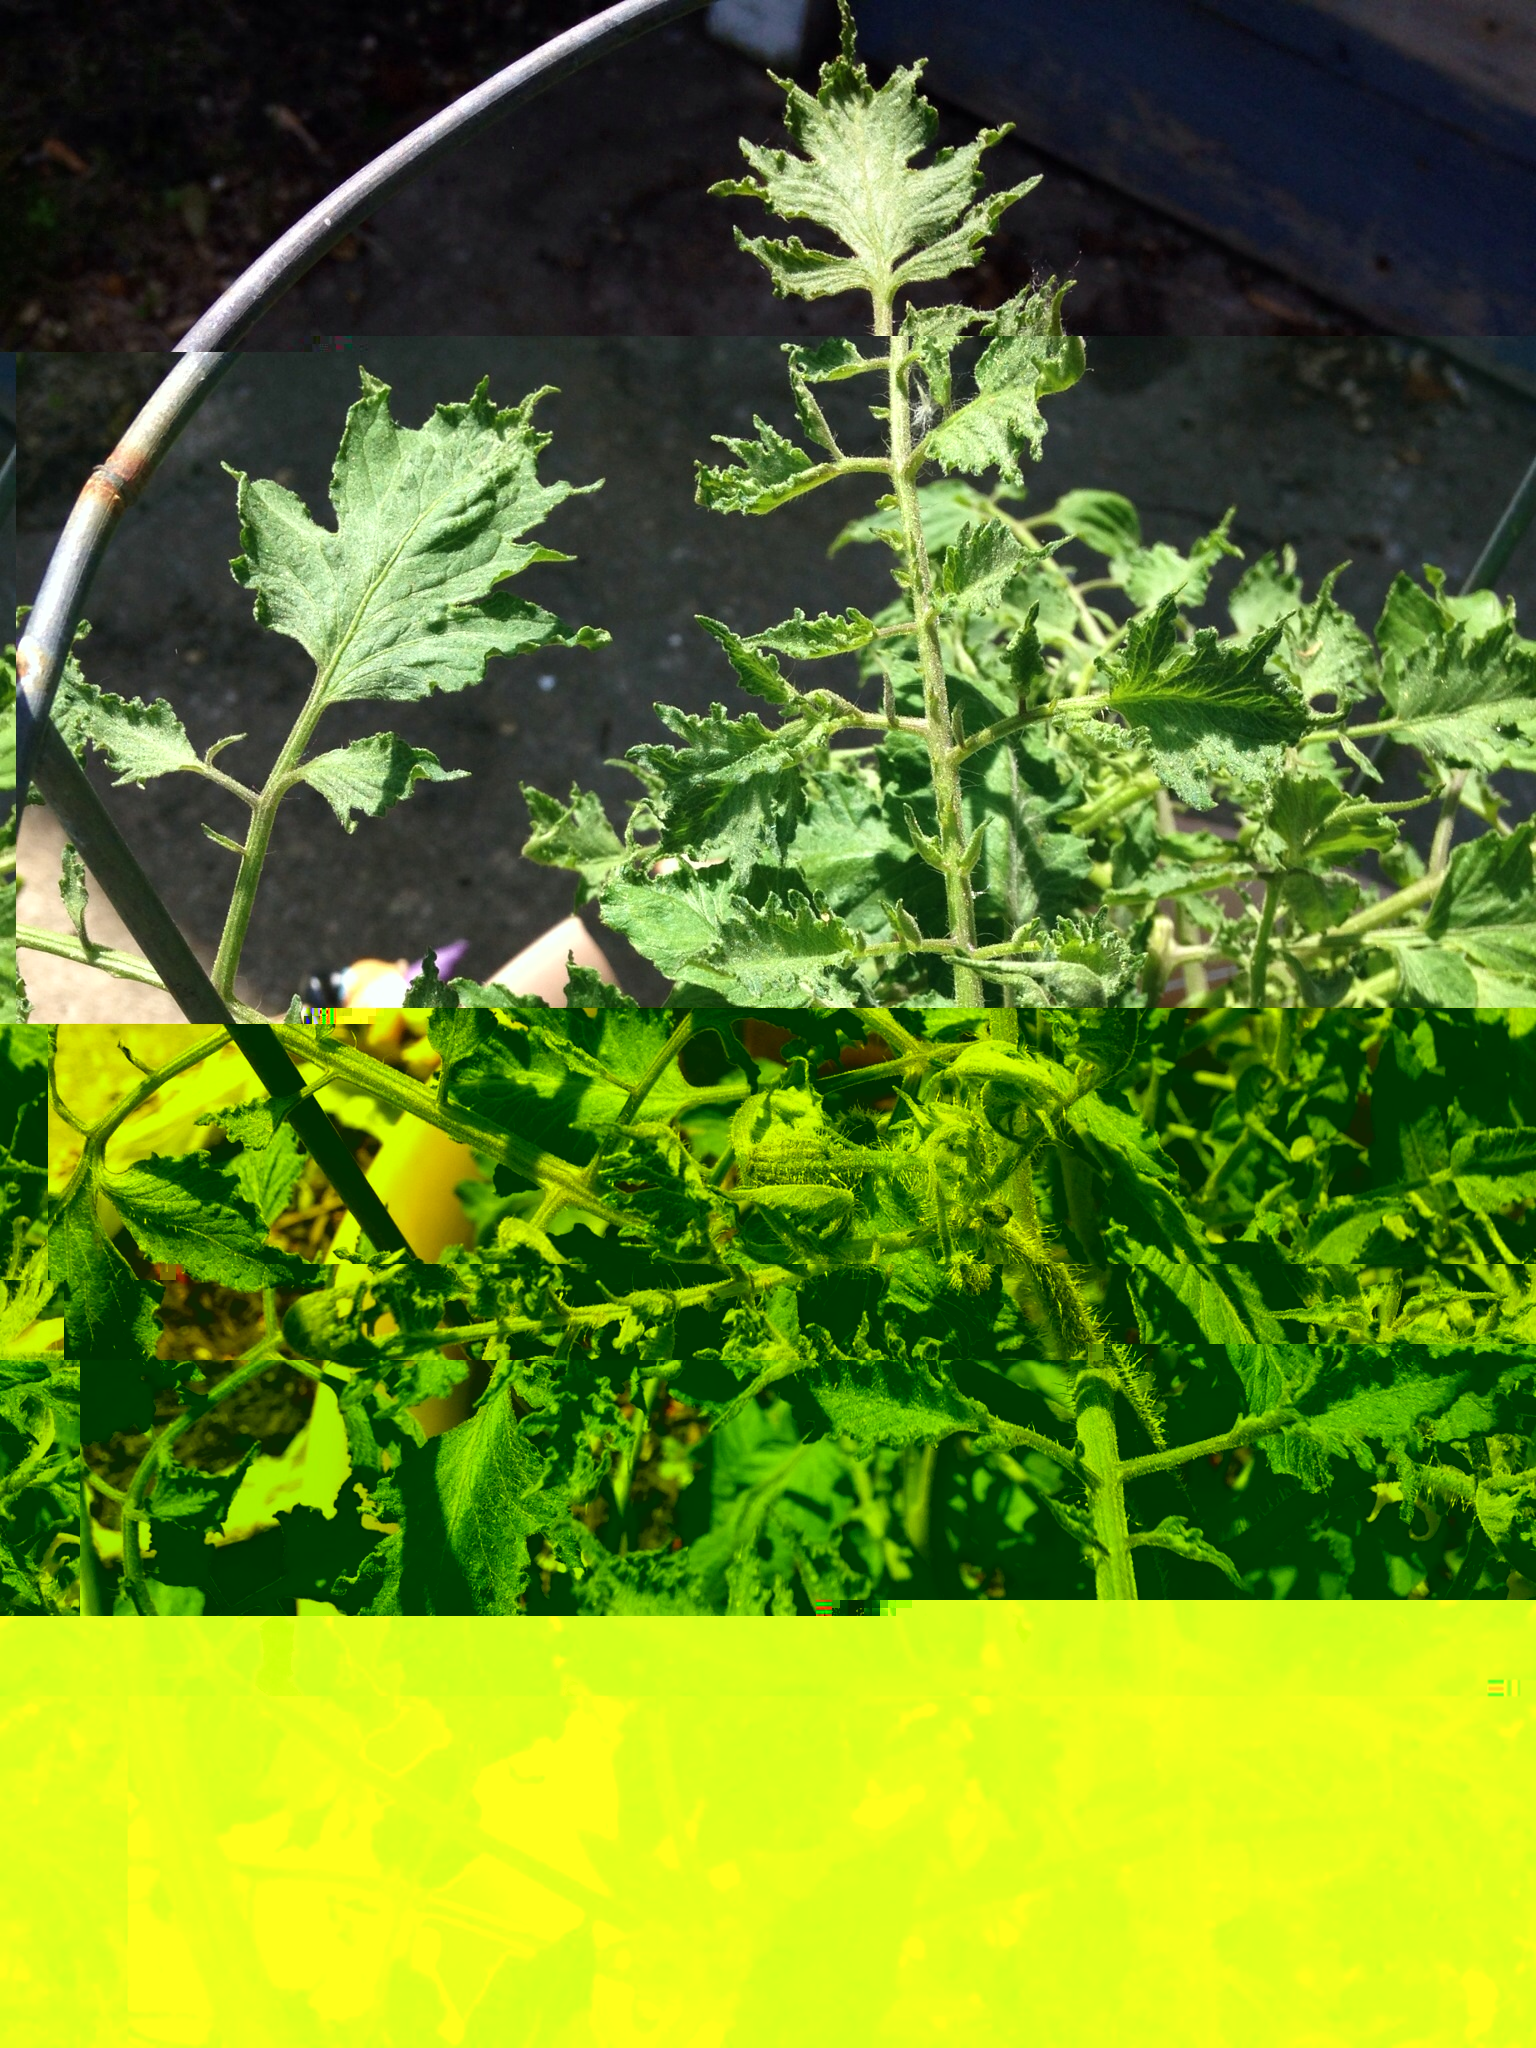 Tomato Leaves Curling And Wilting No Other Bad Stuff